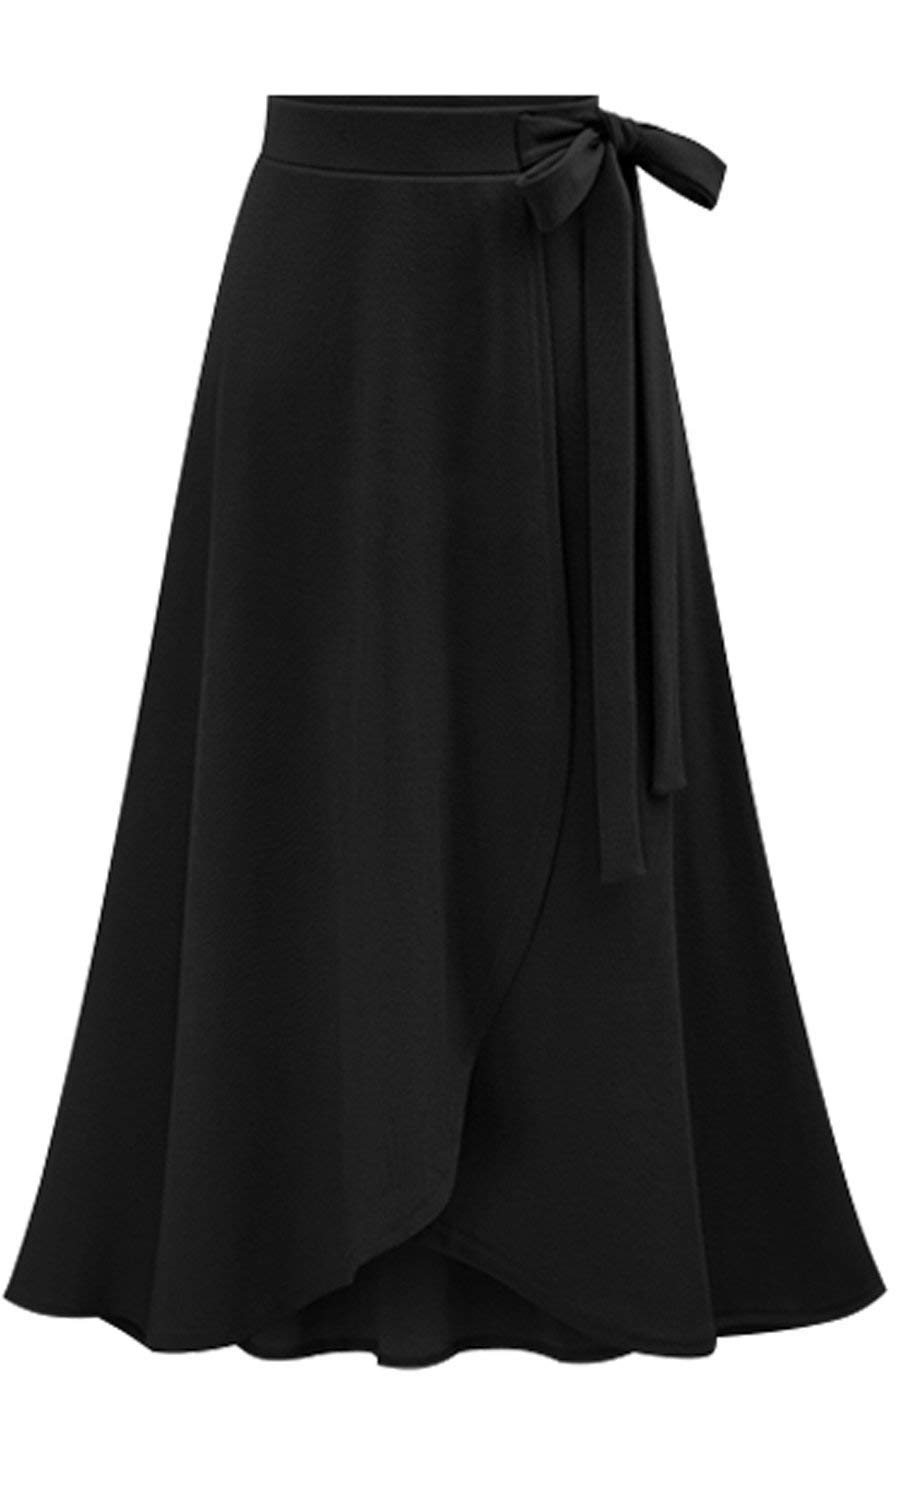 Les umes Womens Fashion Bow-Knot Flare Skirt Elastic High Waist Spring Fall Midi A Line Knit Skirts Black L by Les umes